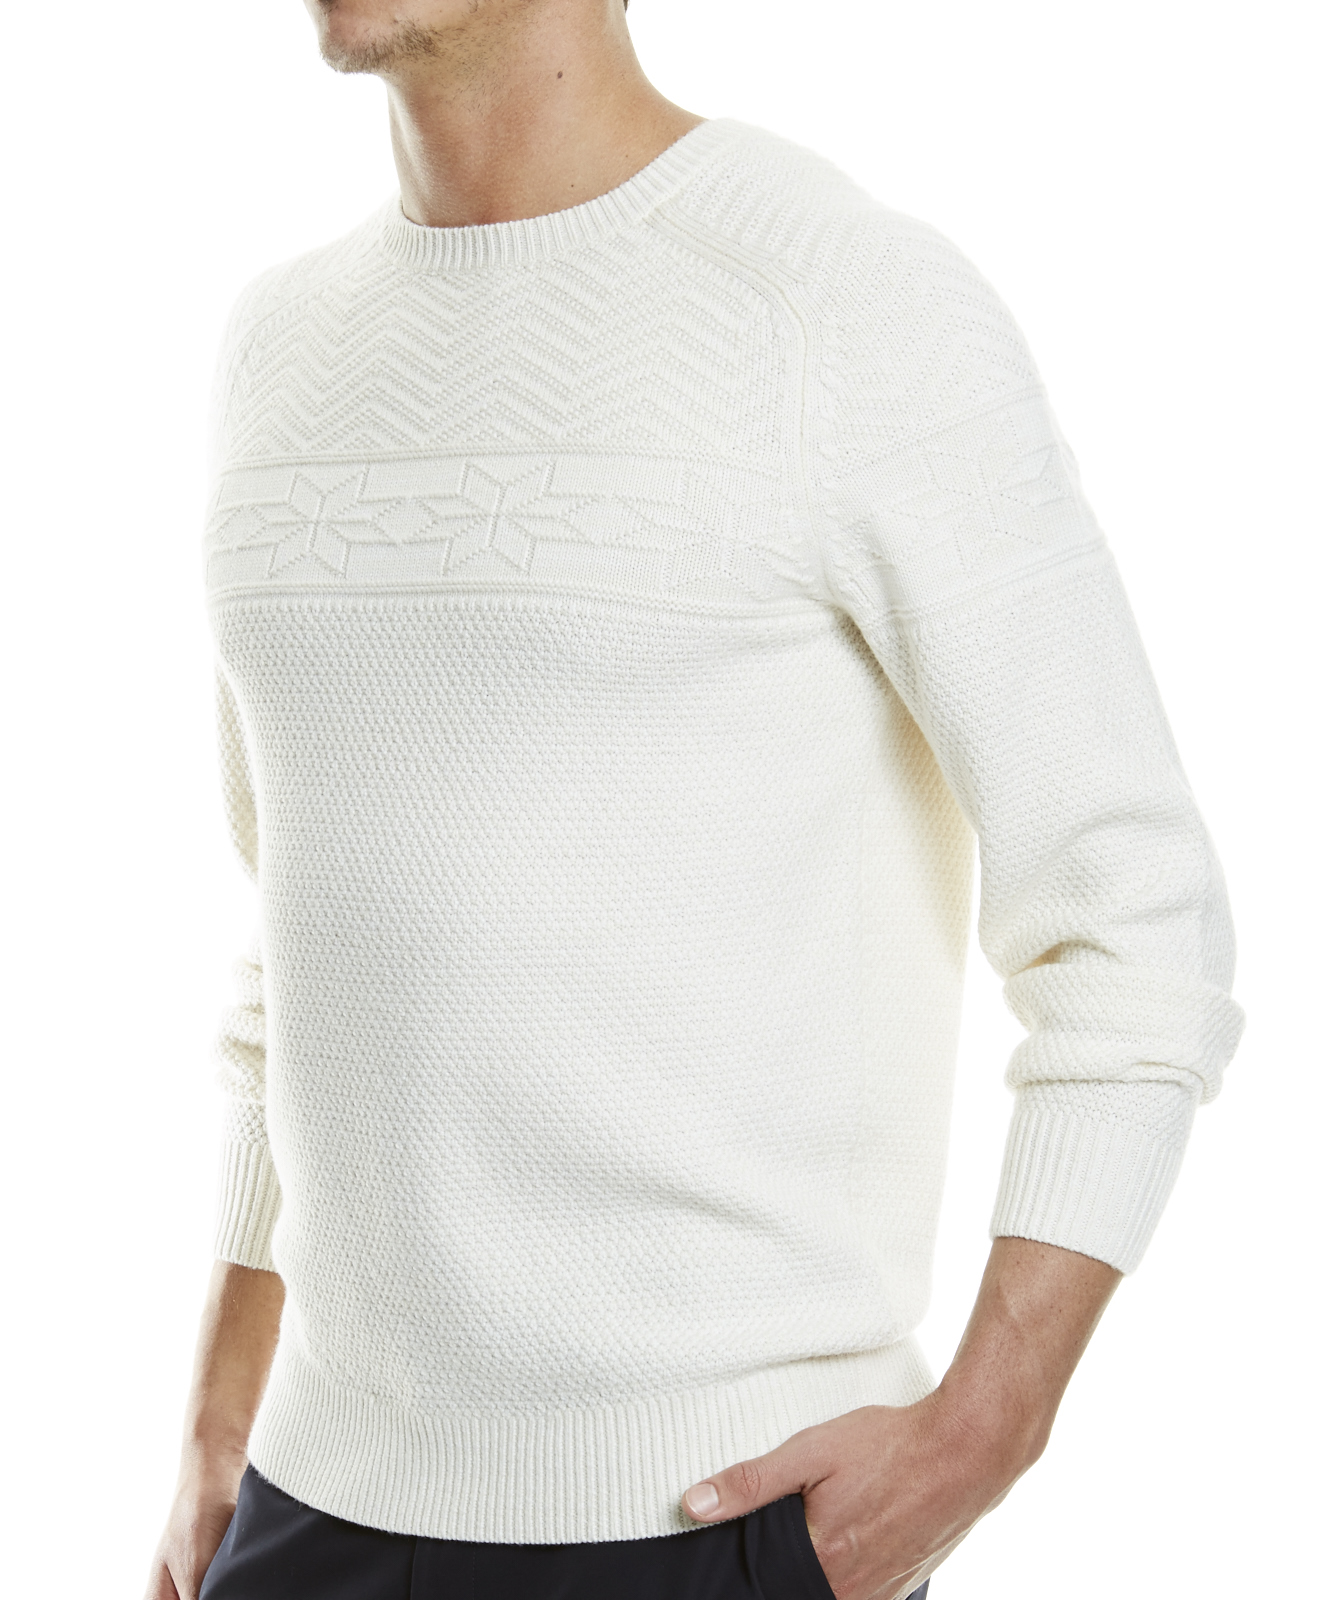 The Iconic Wool Crew Knit, Sportscraft Online